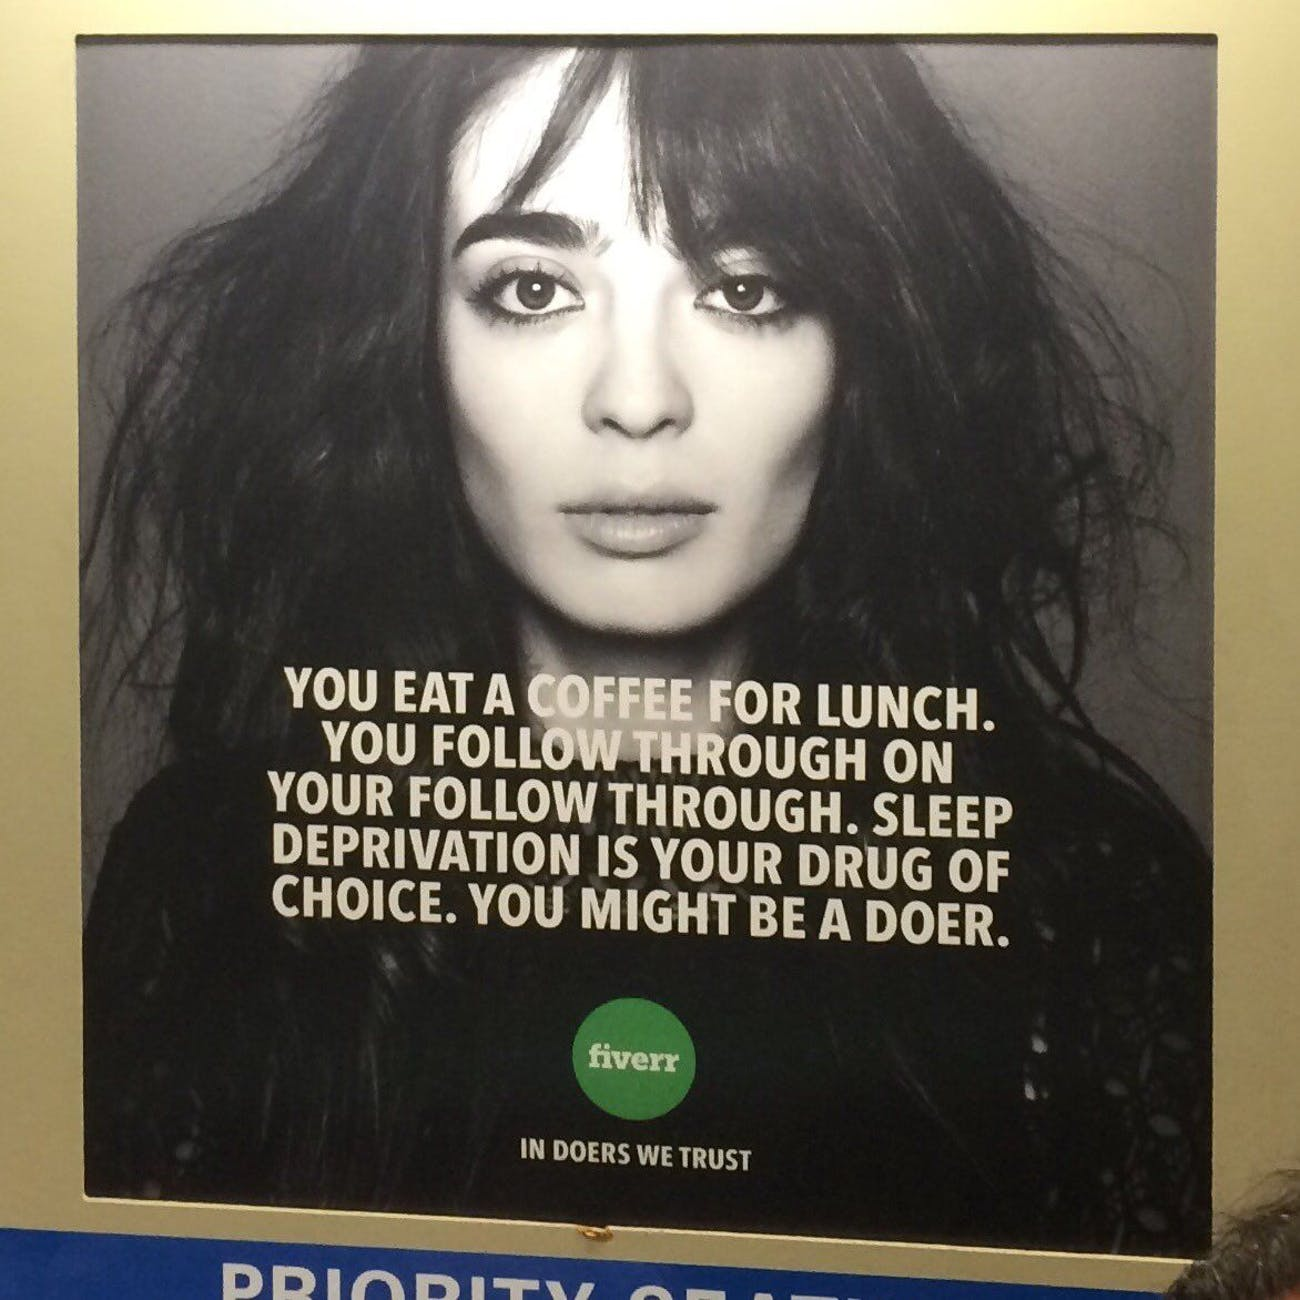 An ad for Fiverr, a gig-economy business.